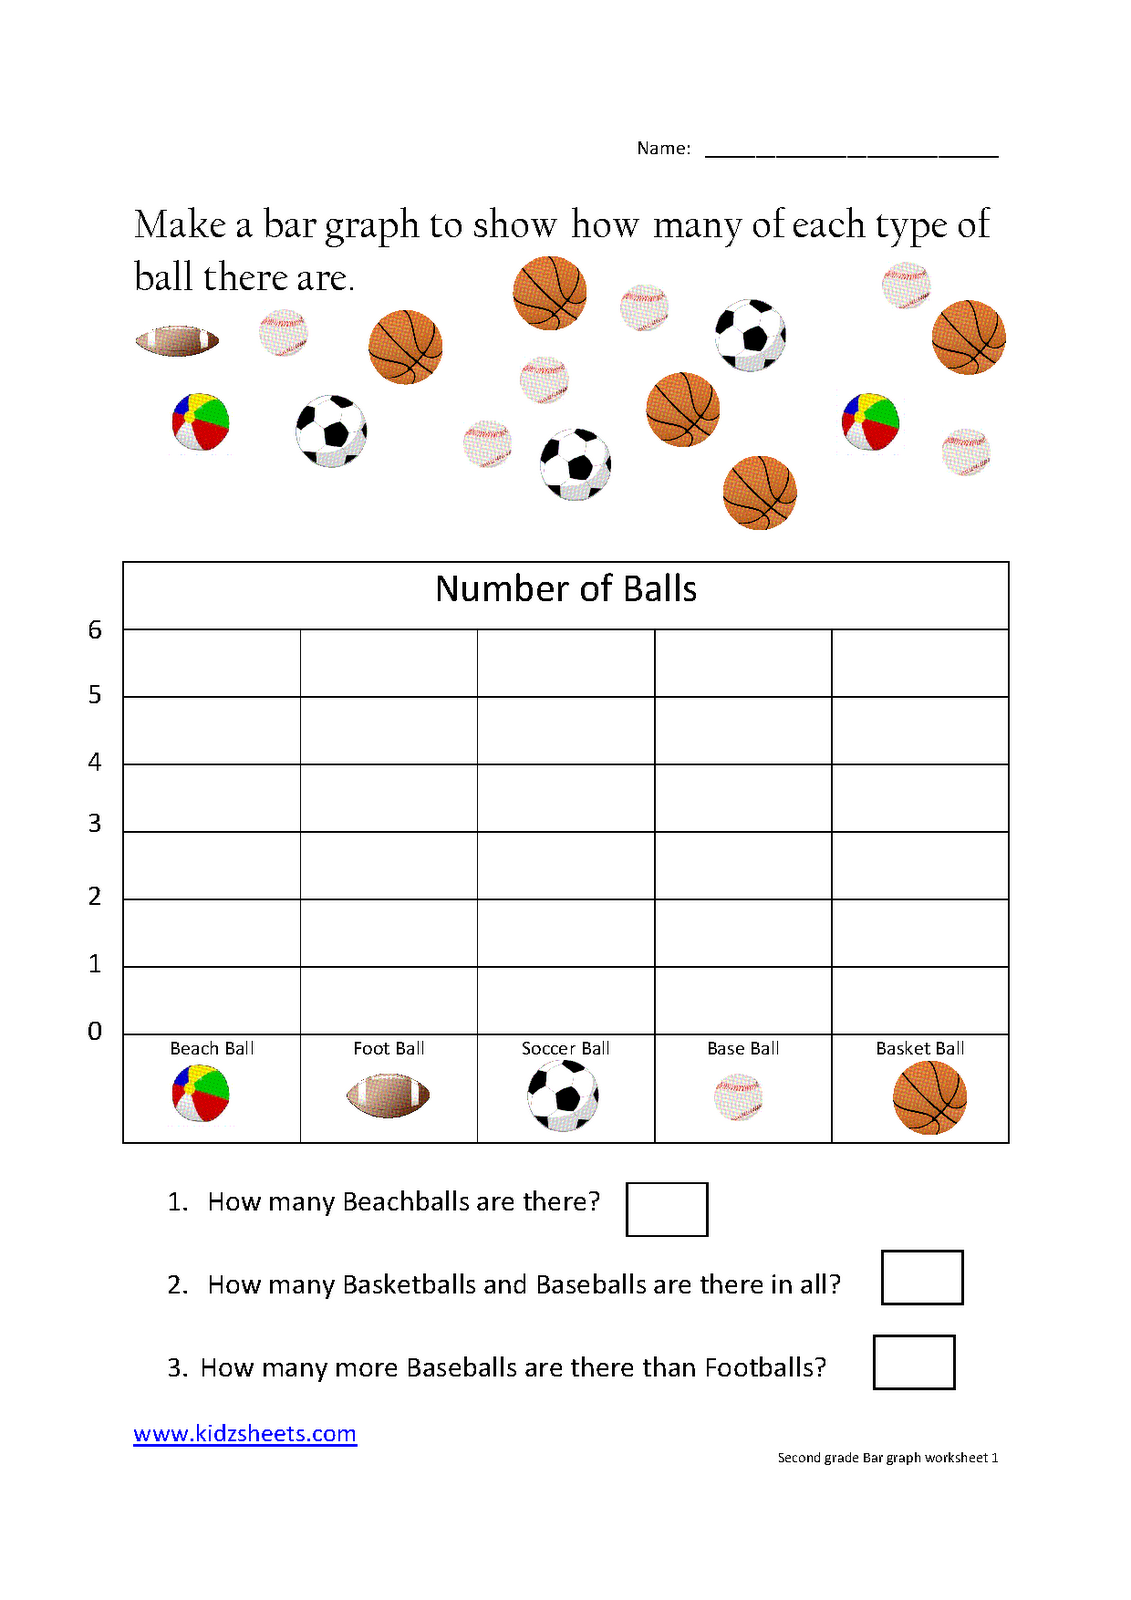 Worksheets Bar Graph Worksheets kidz worksheets second grade bar graph worksheet1 graph